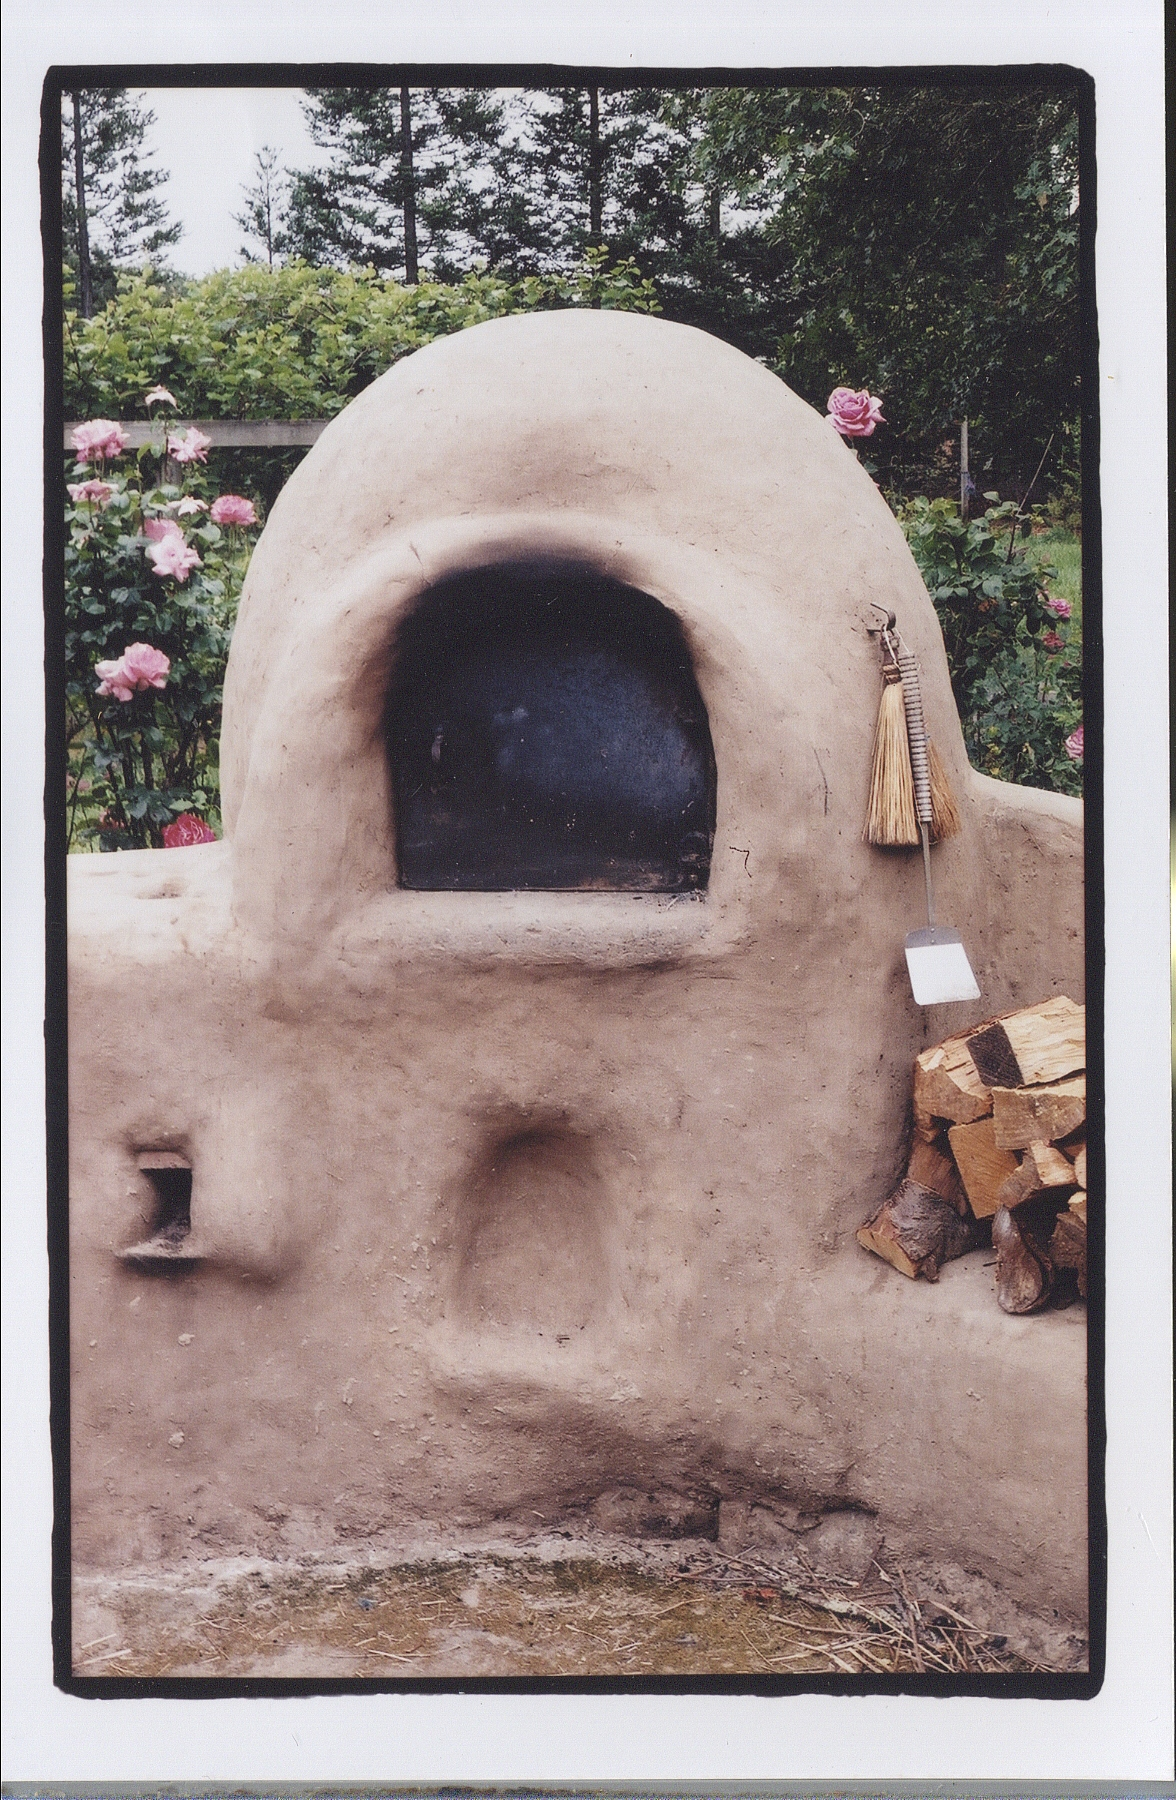 Guest Article An Earthen Oven Odyssey By Joe Kennedy Hand Print Press Rocket Stove Diagram Fireplace Pint I Had Heard Differ